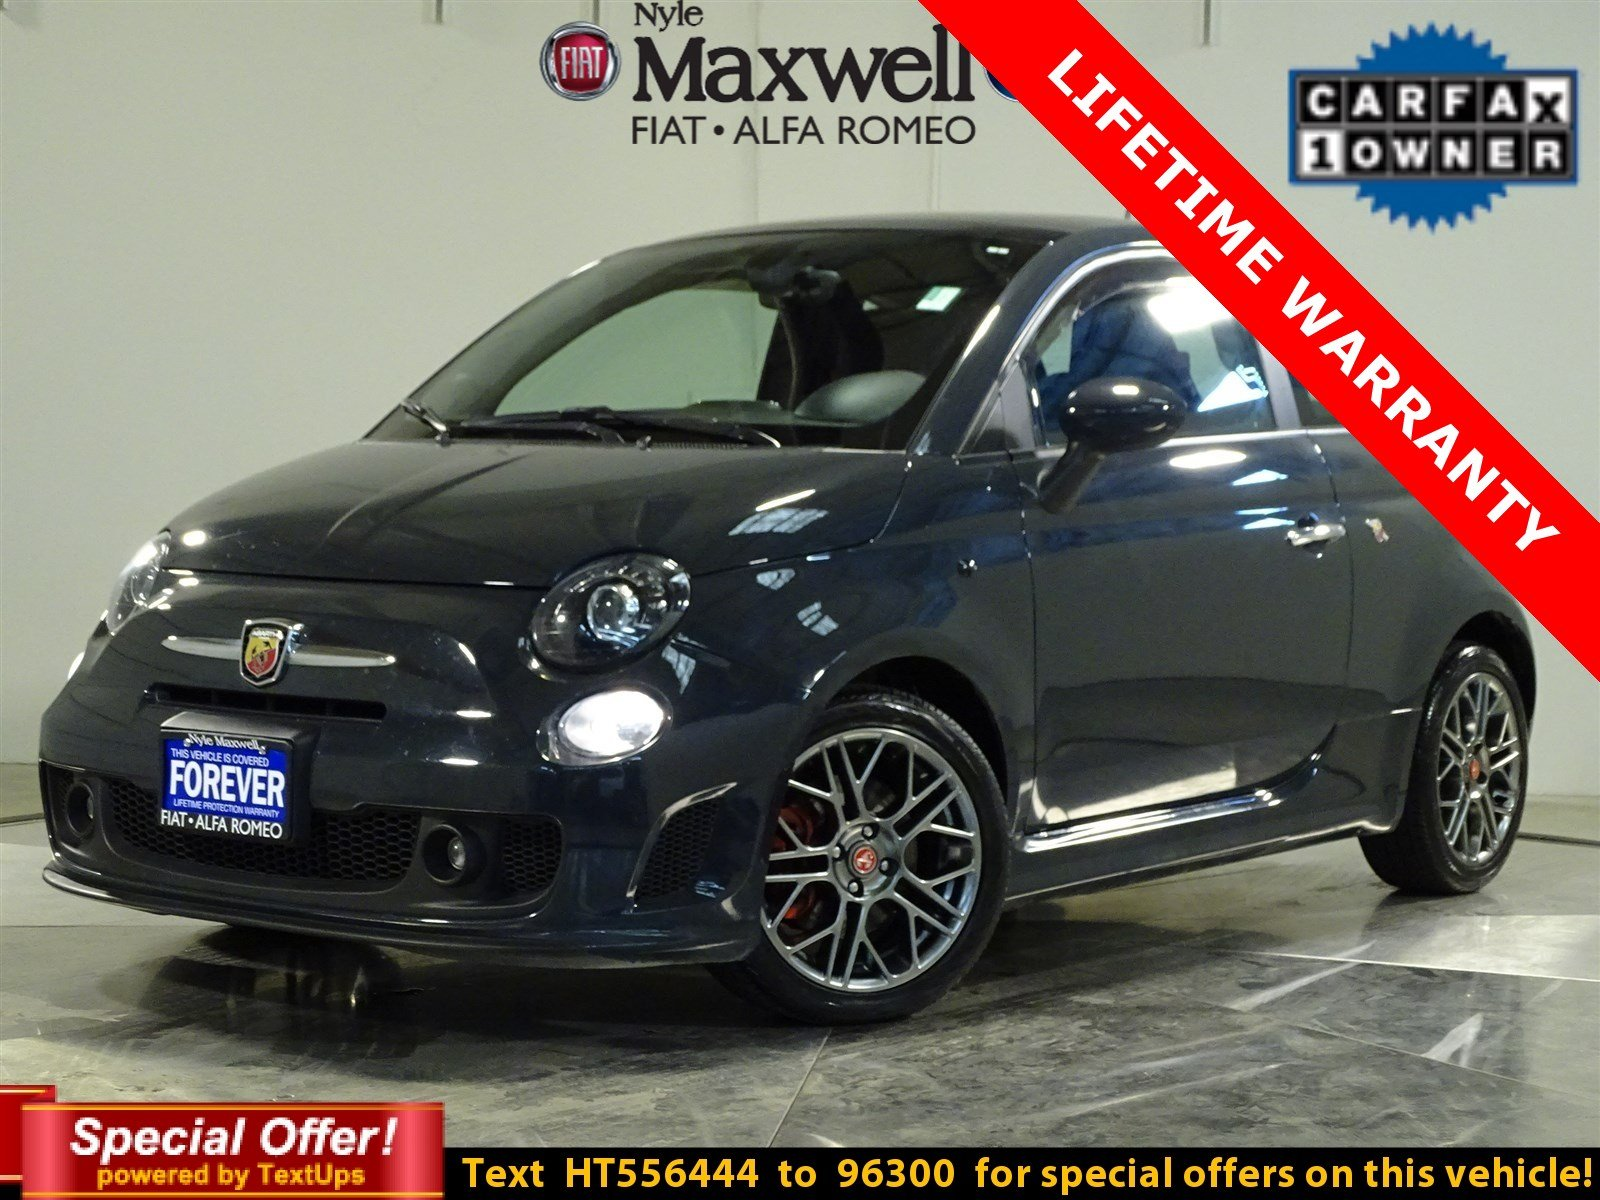 Dealer Certified 2017 Fiat 500 Abarth Fwd Hatchback Nyle Maxwell Gmc